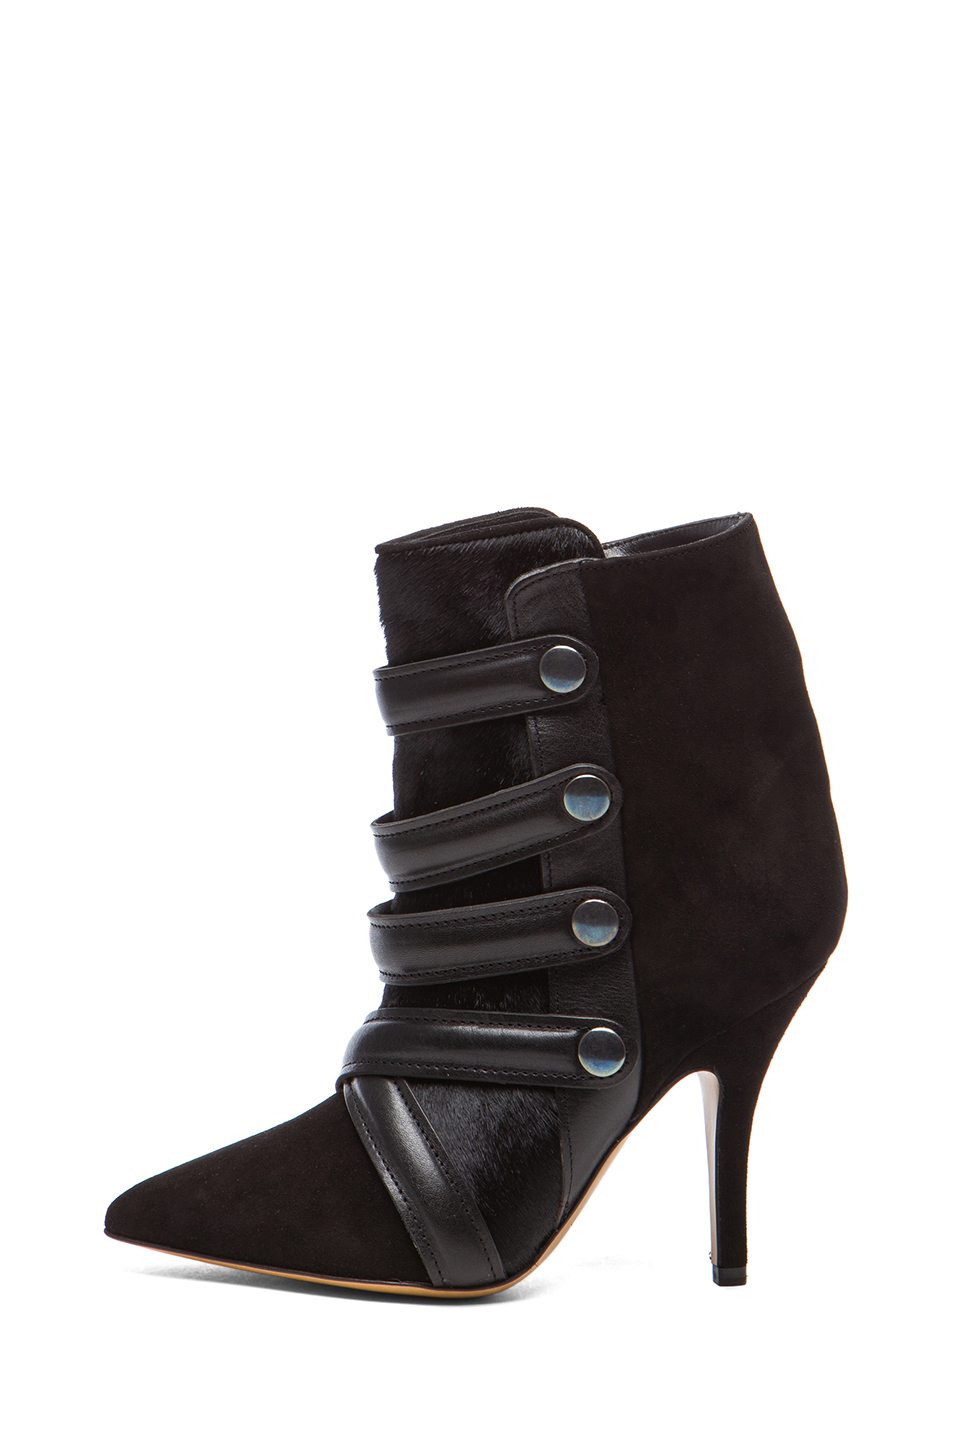 Isabel Marant Tacy Pony Booties in Black